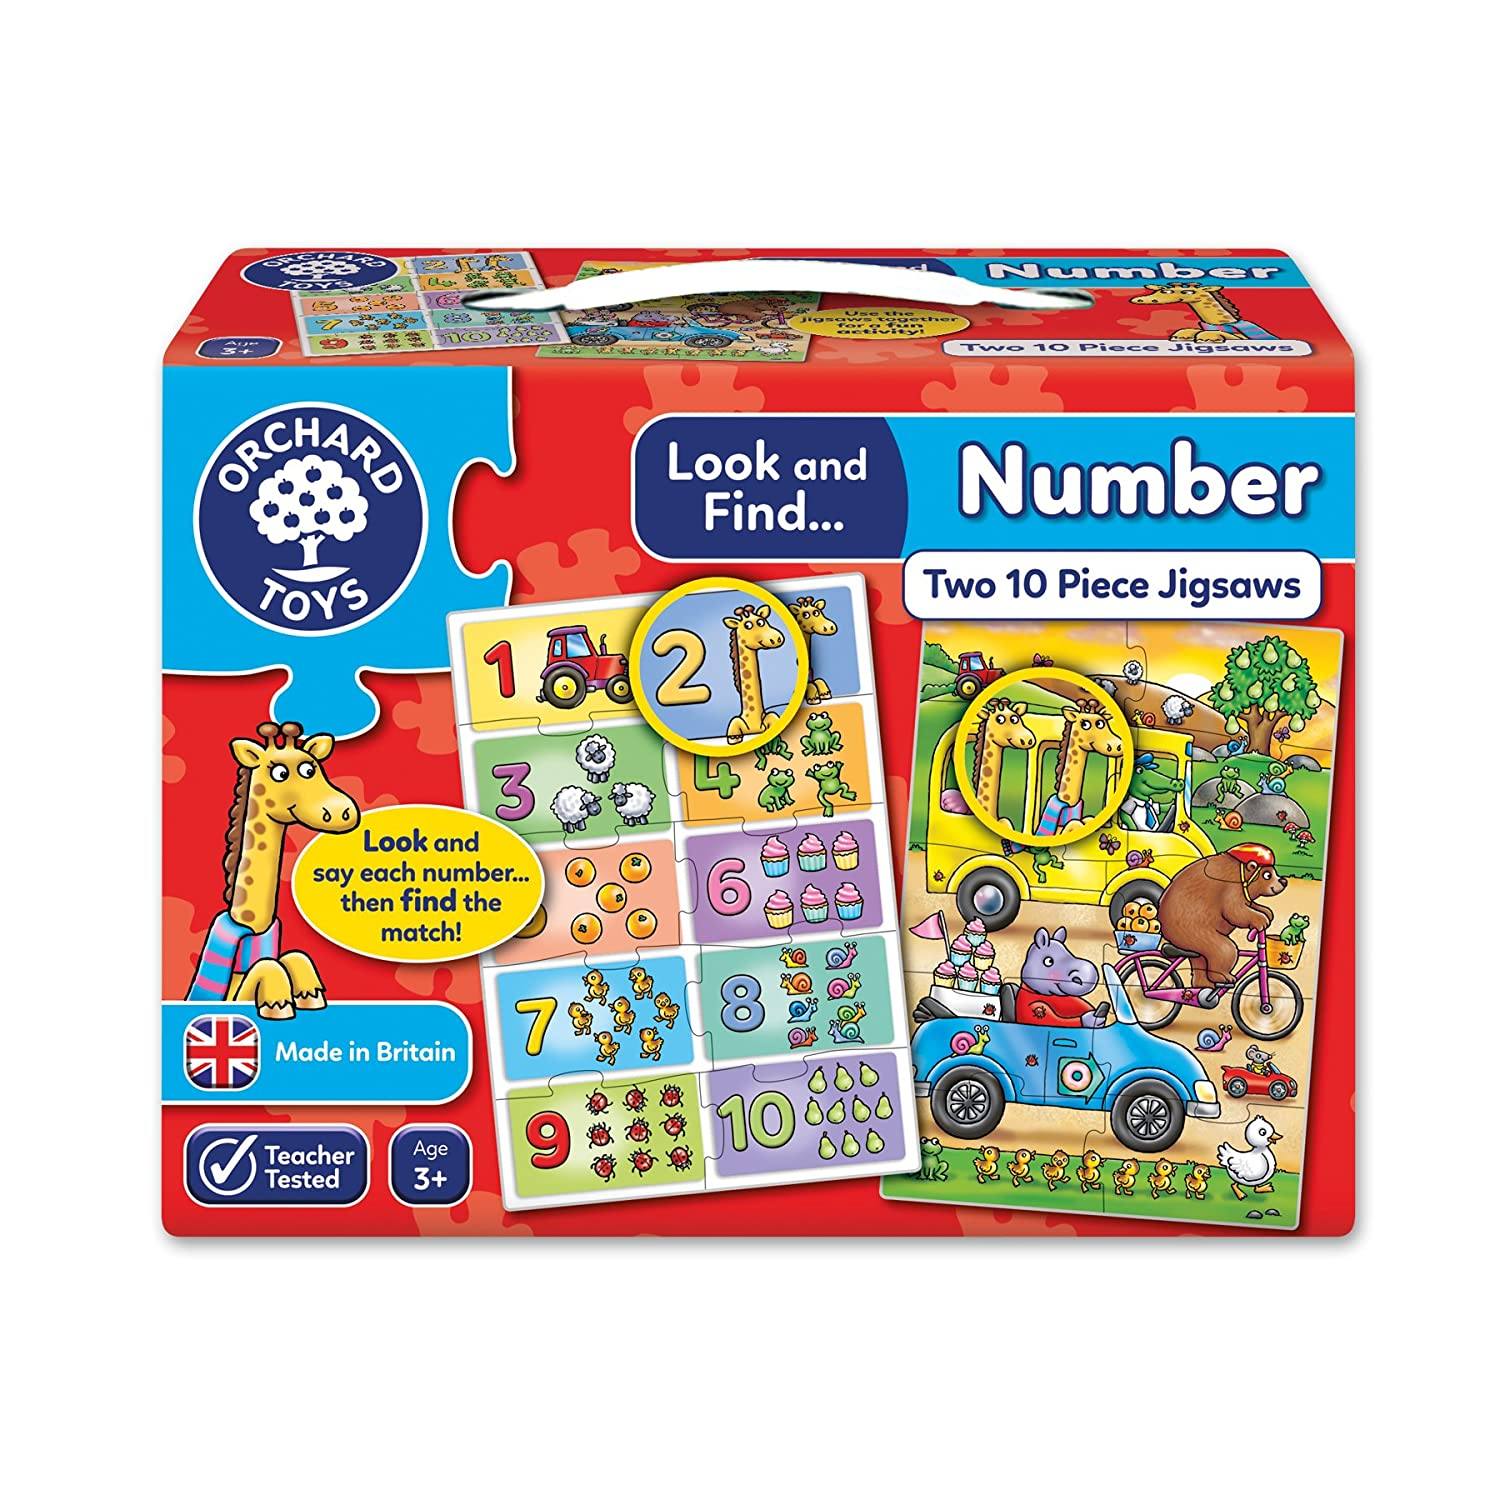 Orchard Toys Look and Find Number Children's Activity Jigsaws Multi 2 x 10 Piece